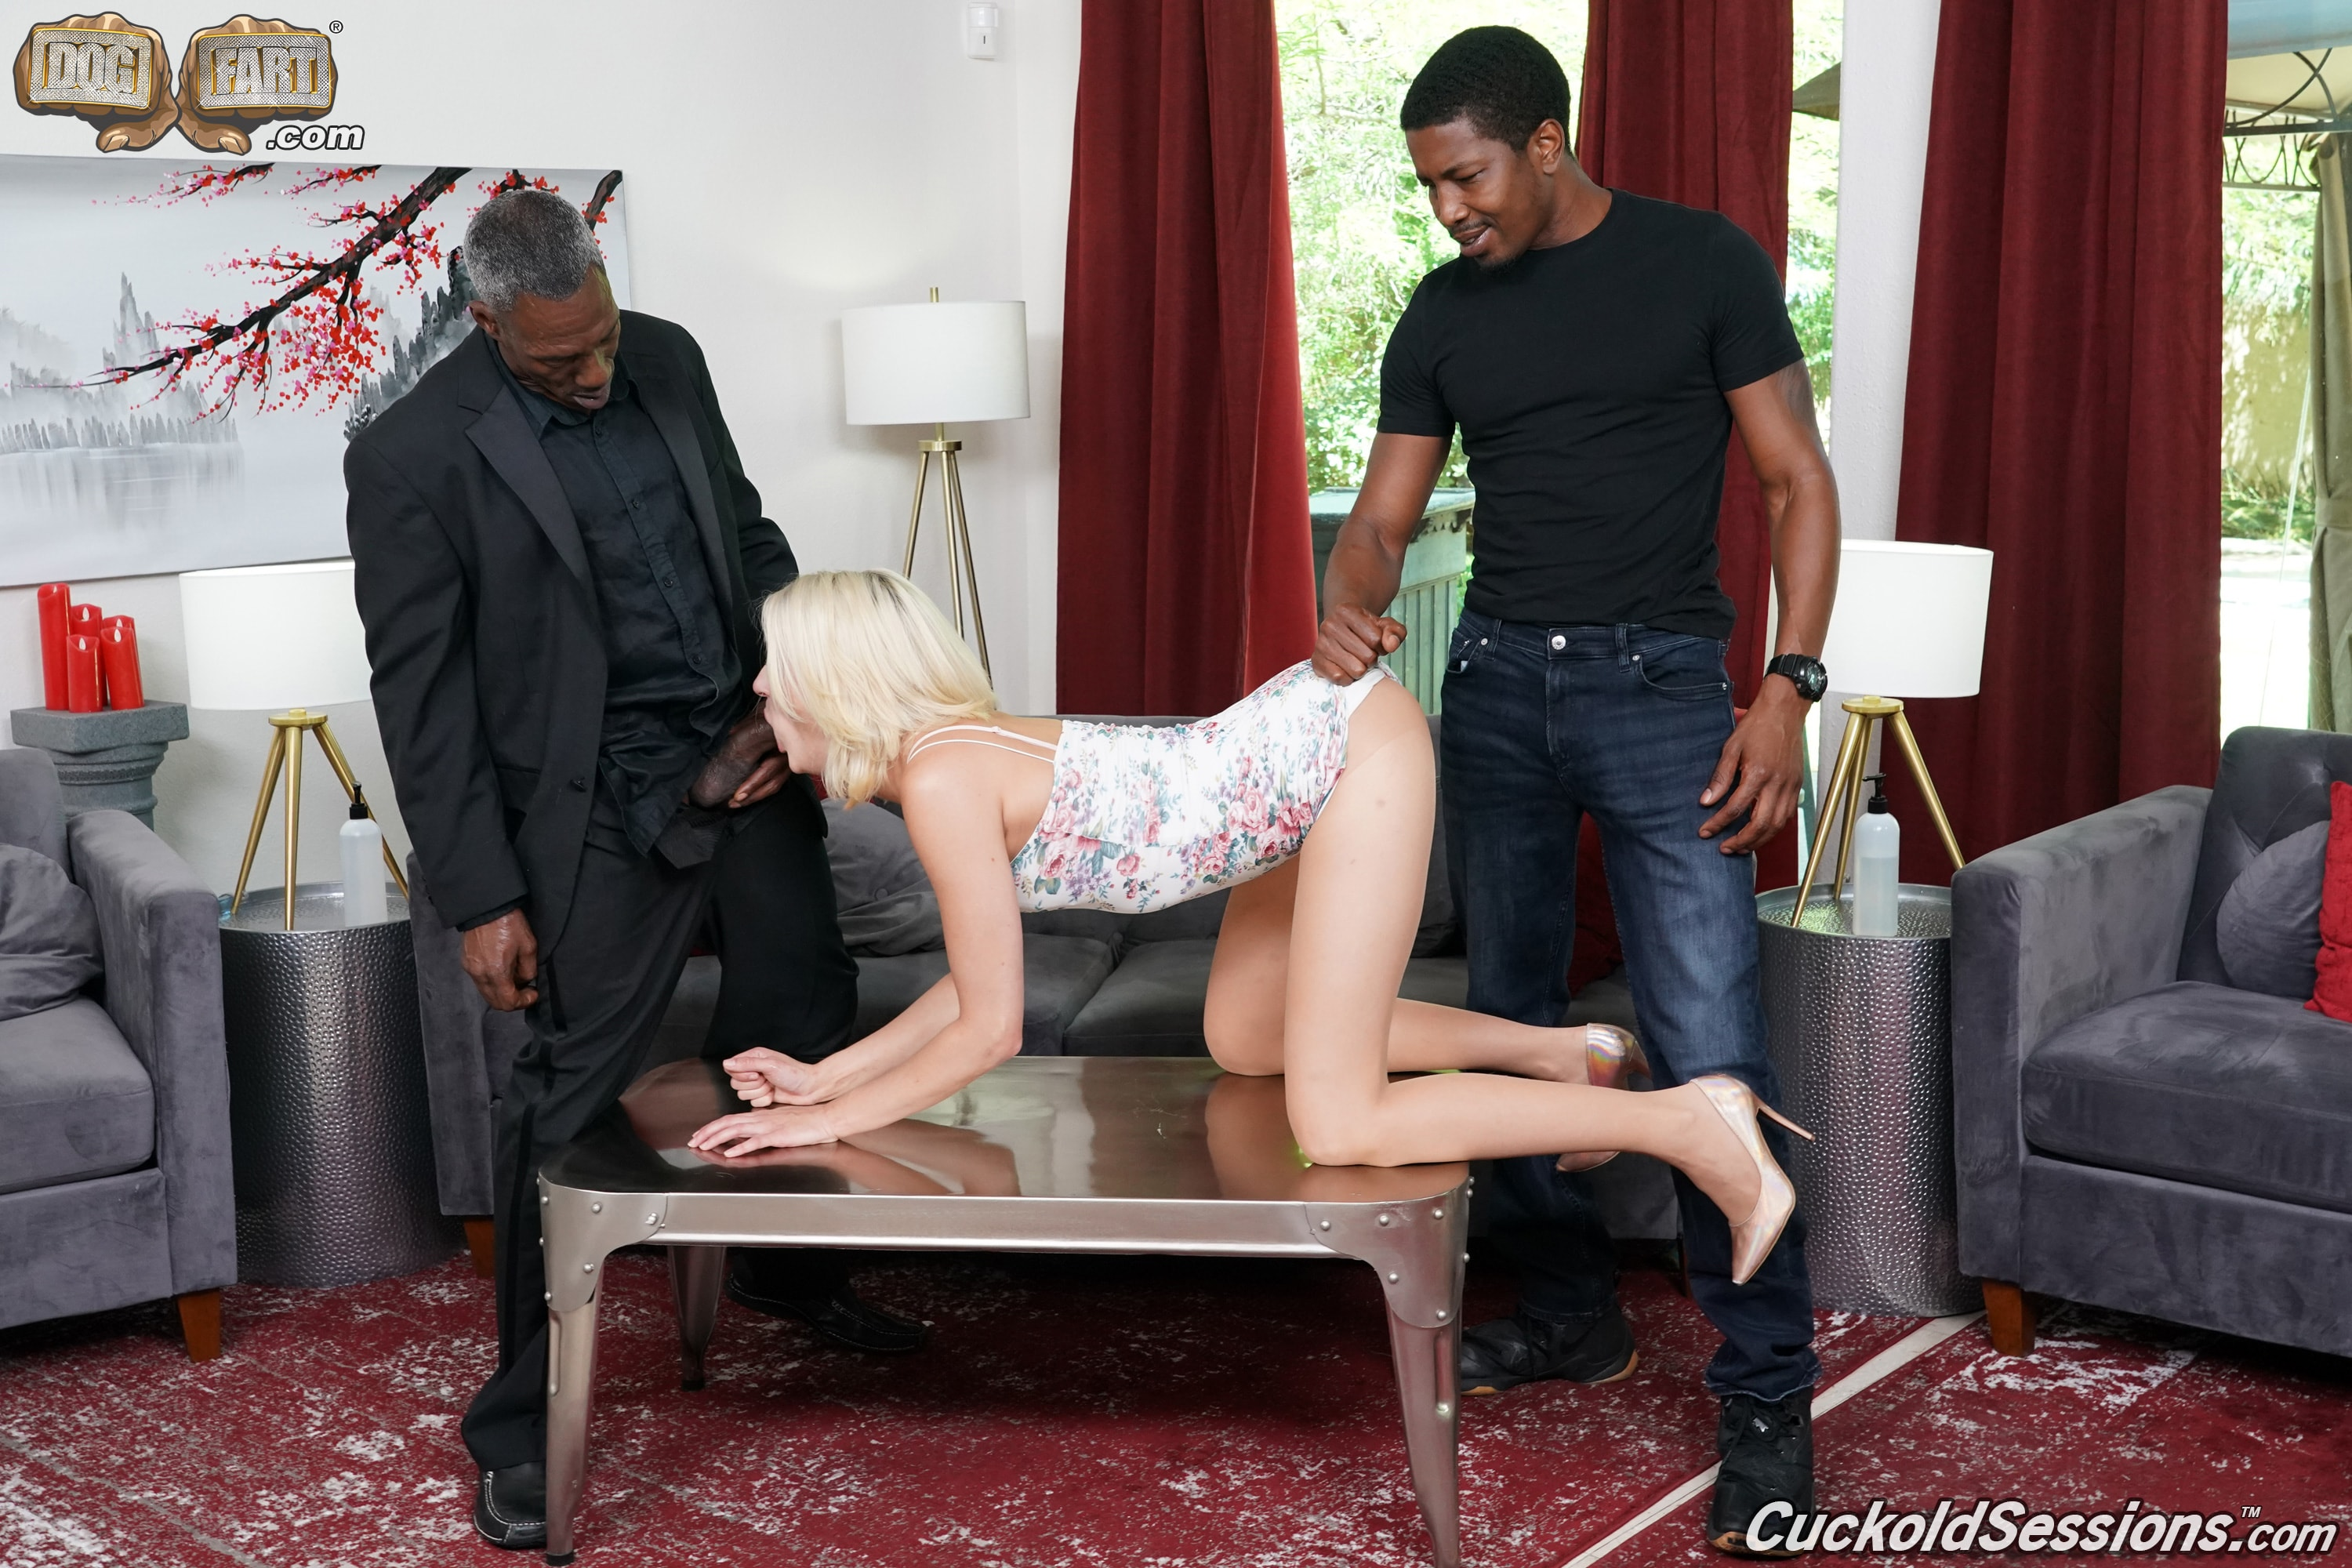 Dogfart '- Cuckold Sessions' starring Zoe Sparx (Photo 13)